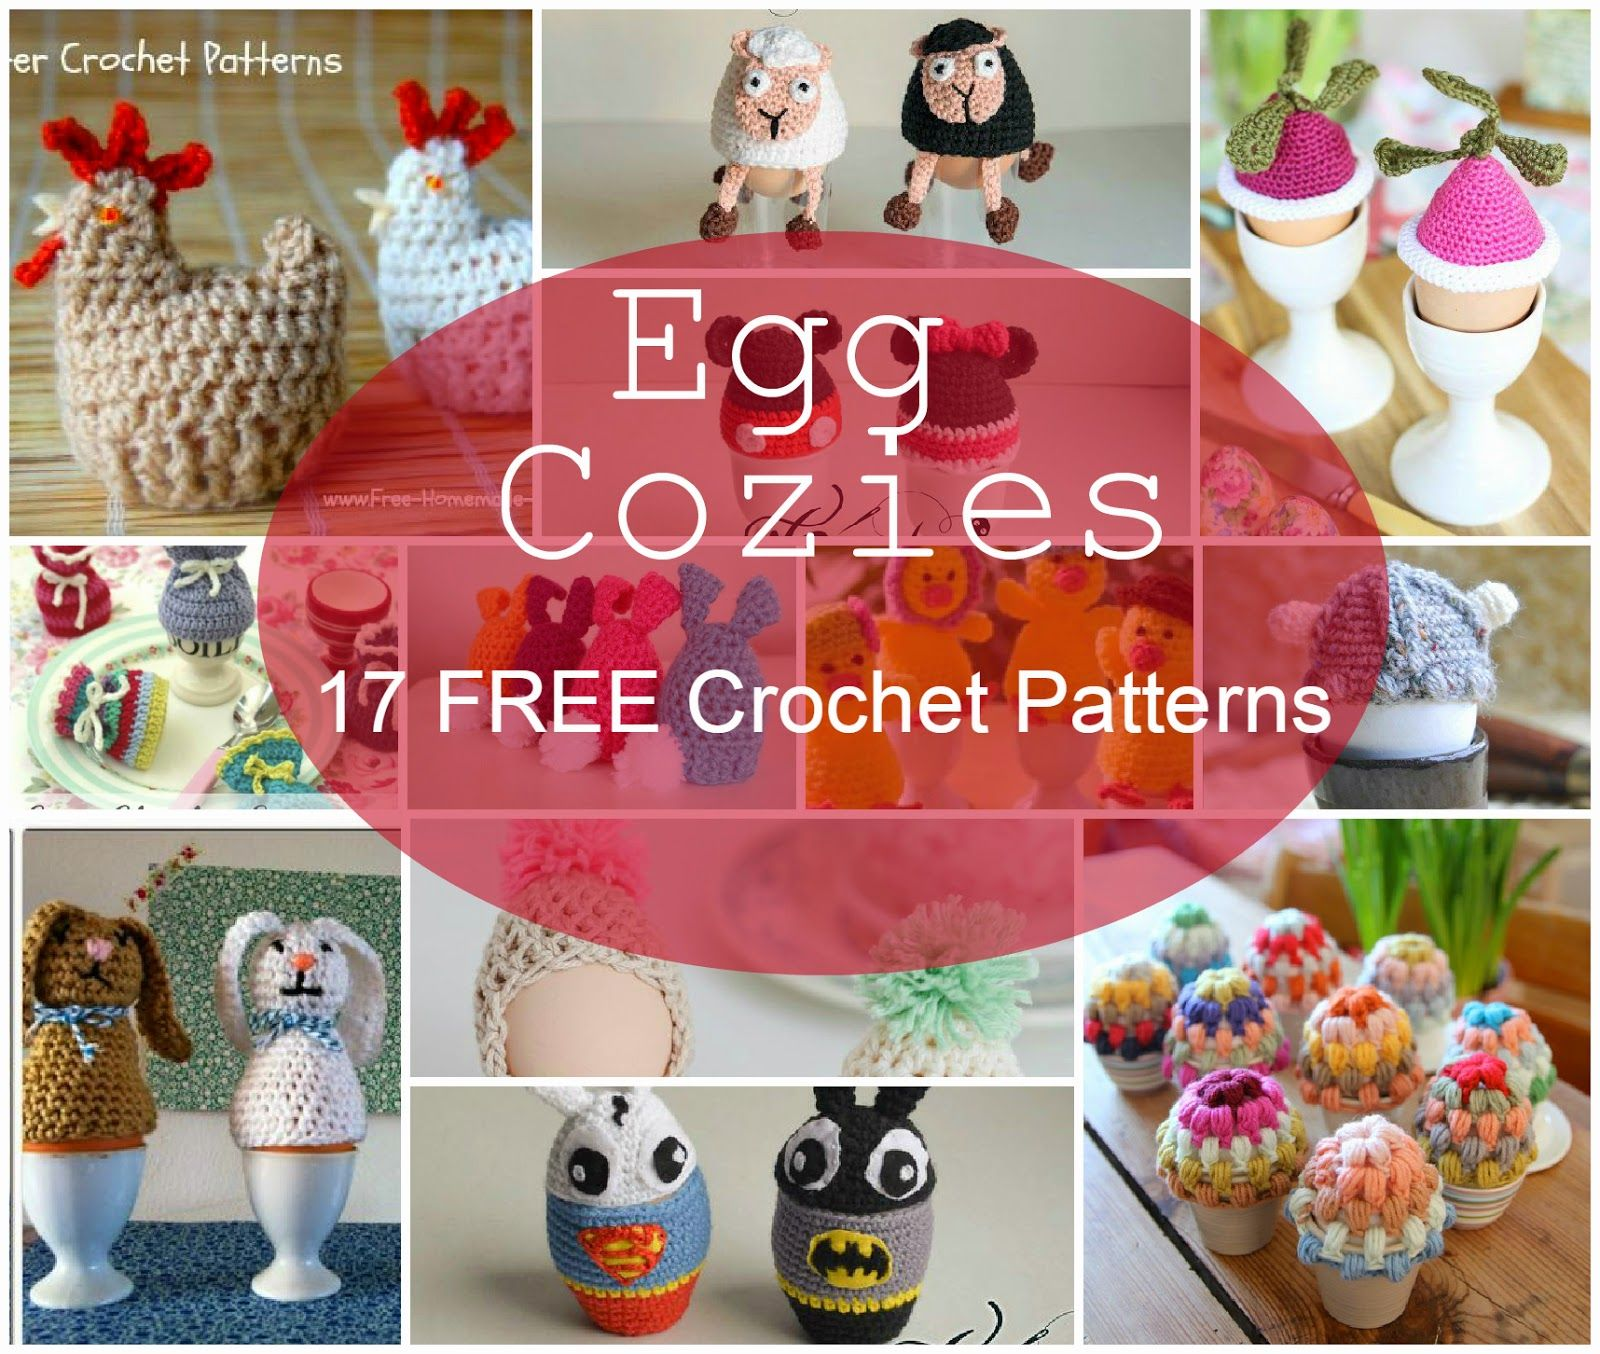 Happiness Crafty: 17 FREE Egg Cozies Crochet Patterns | Pasen ...